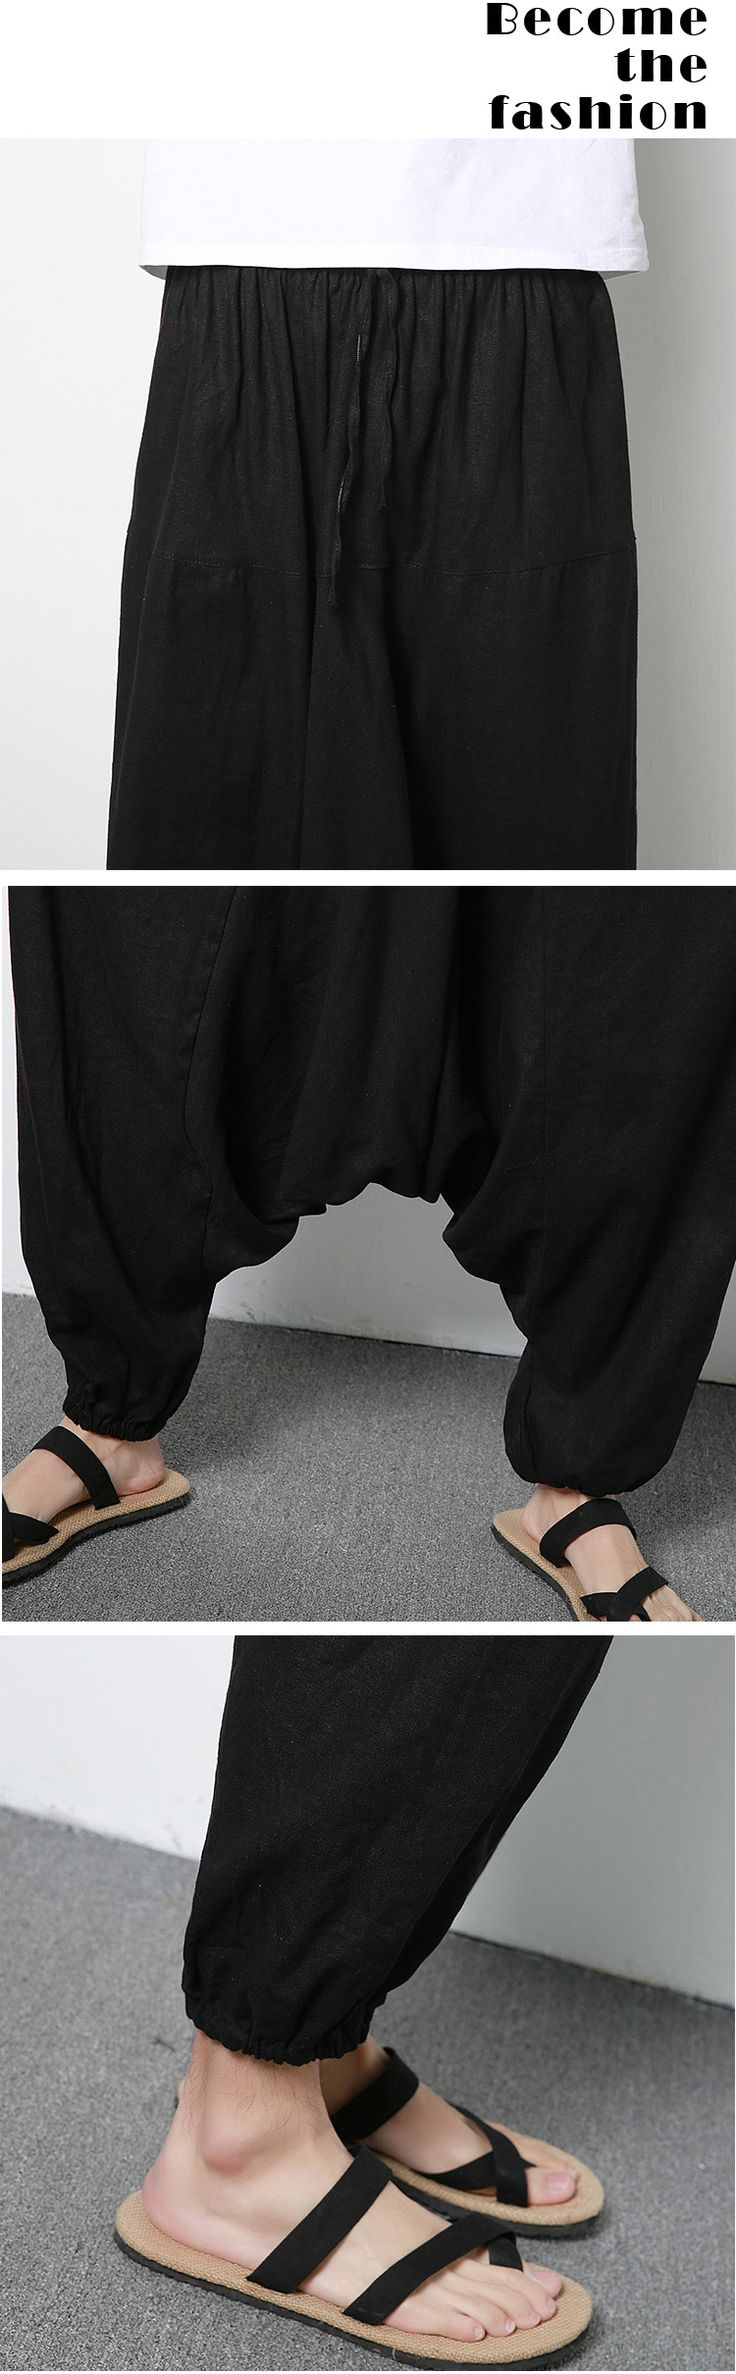 Men's Cotton Linen Harem Pants Casual Baggy Loose Trousers